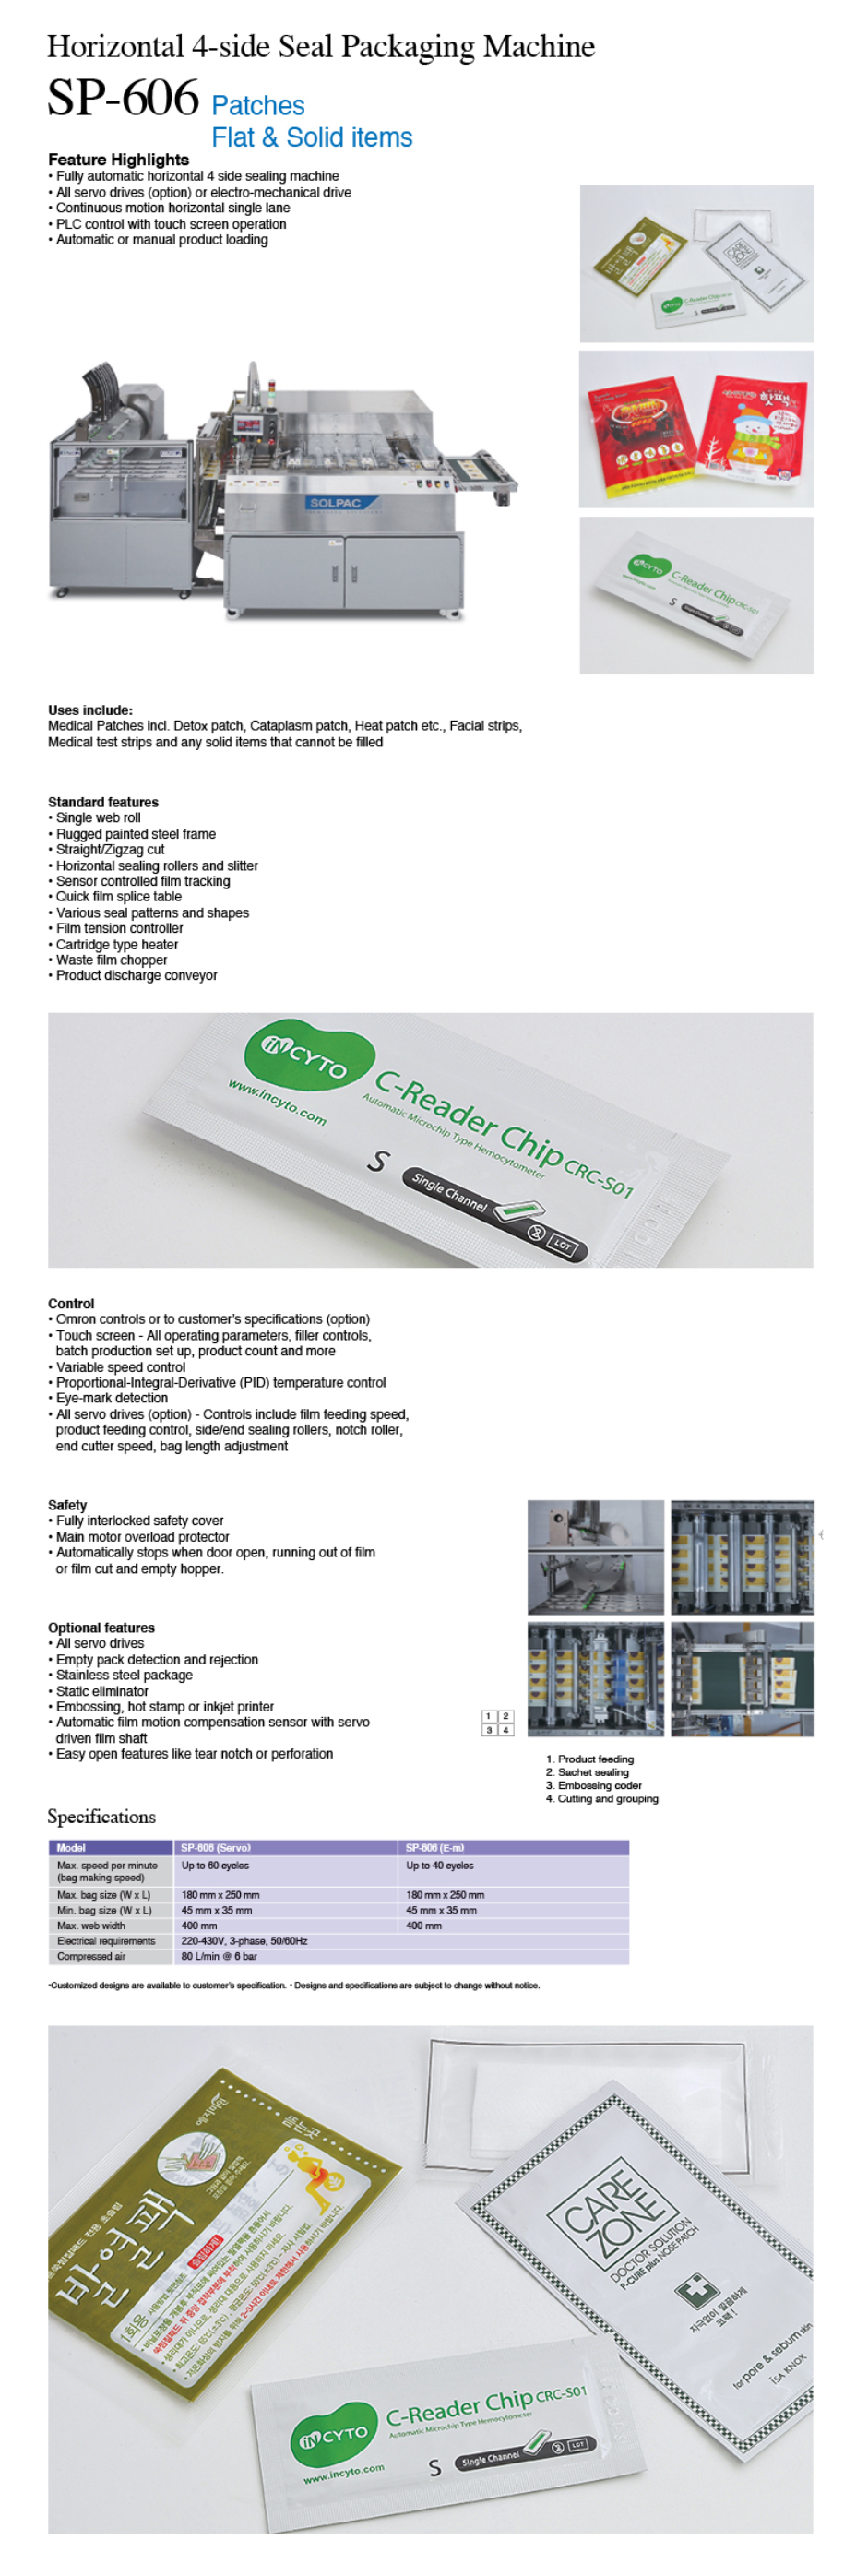 SOLPAC PACKAGING SOLUTION Horizontal 4-side Seal Packaging Machine (Patches Flat & Solid Items) SP-606